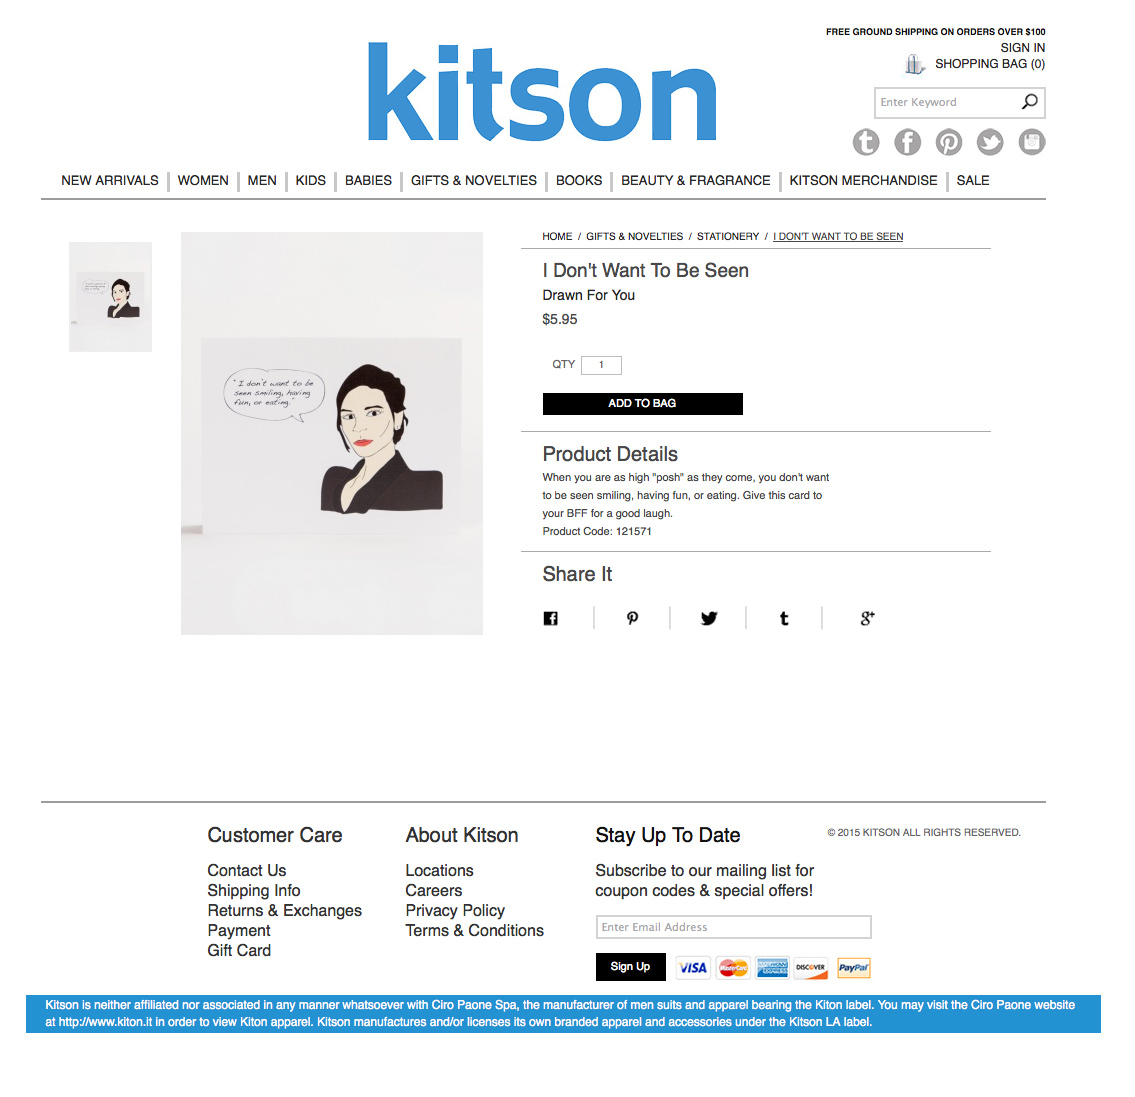 kitson-card-i-dont-want-to-be-seen.jpg